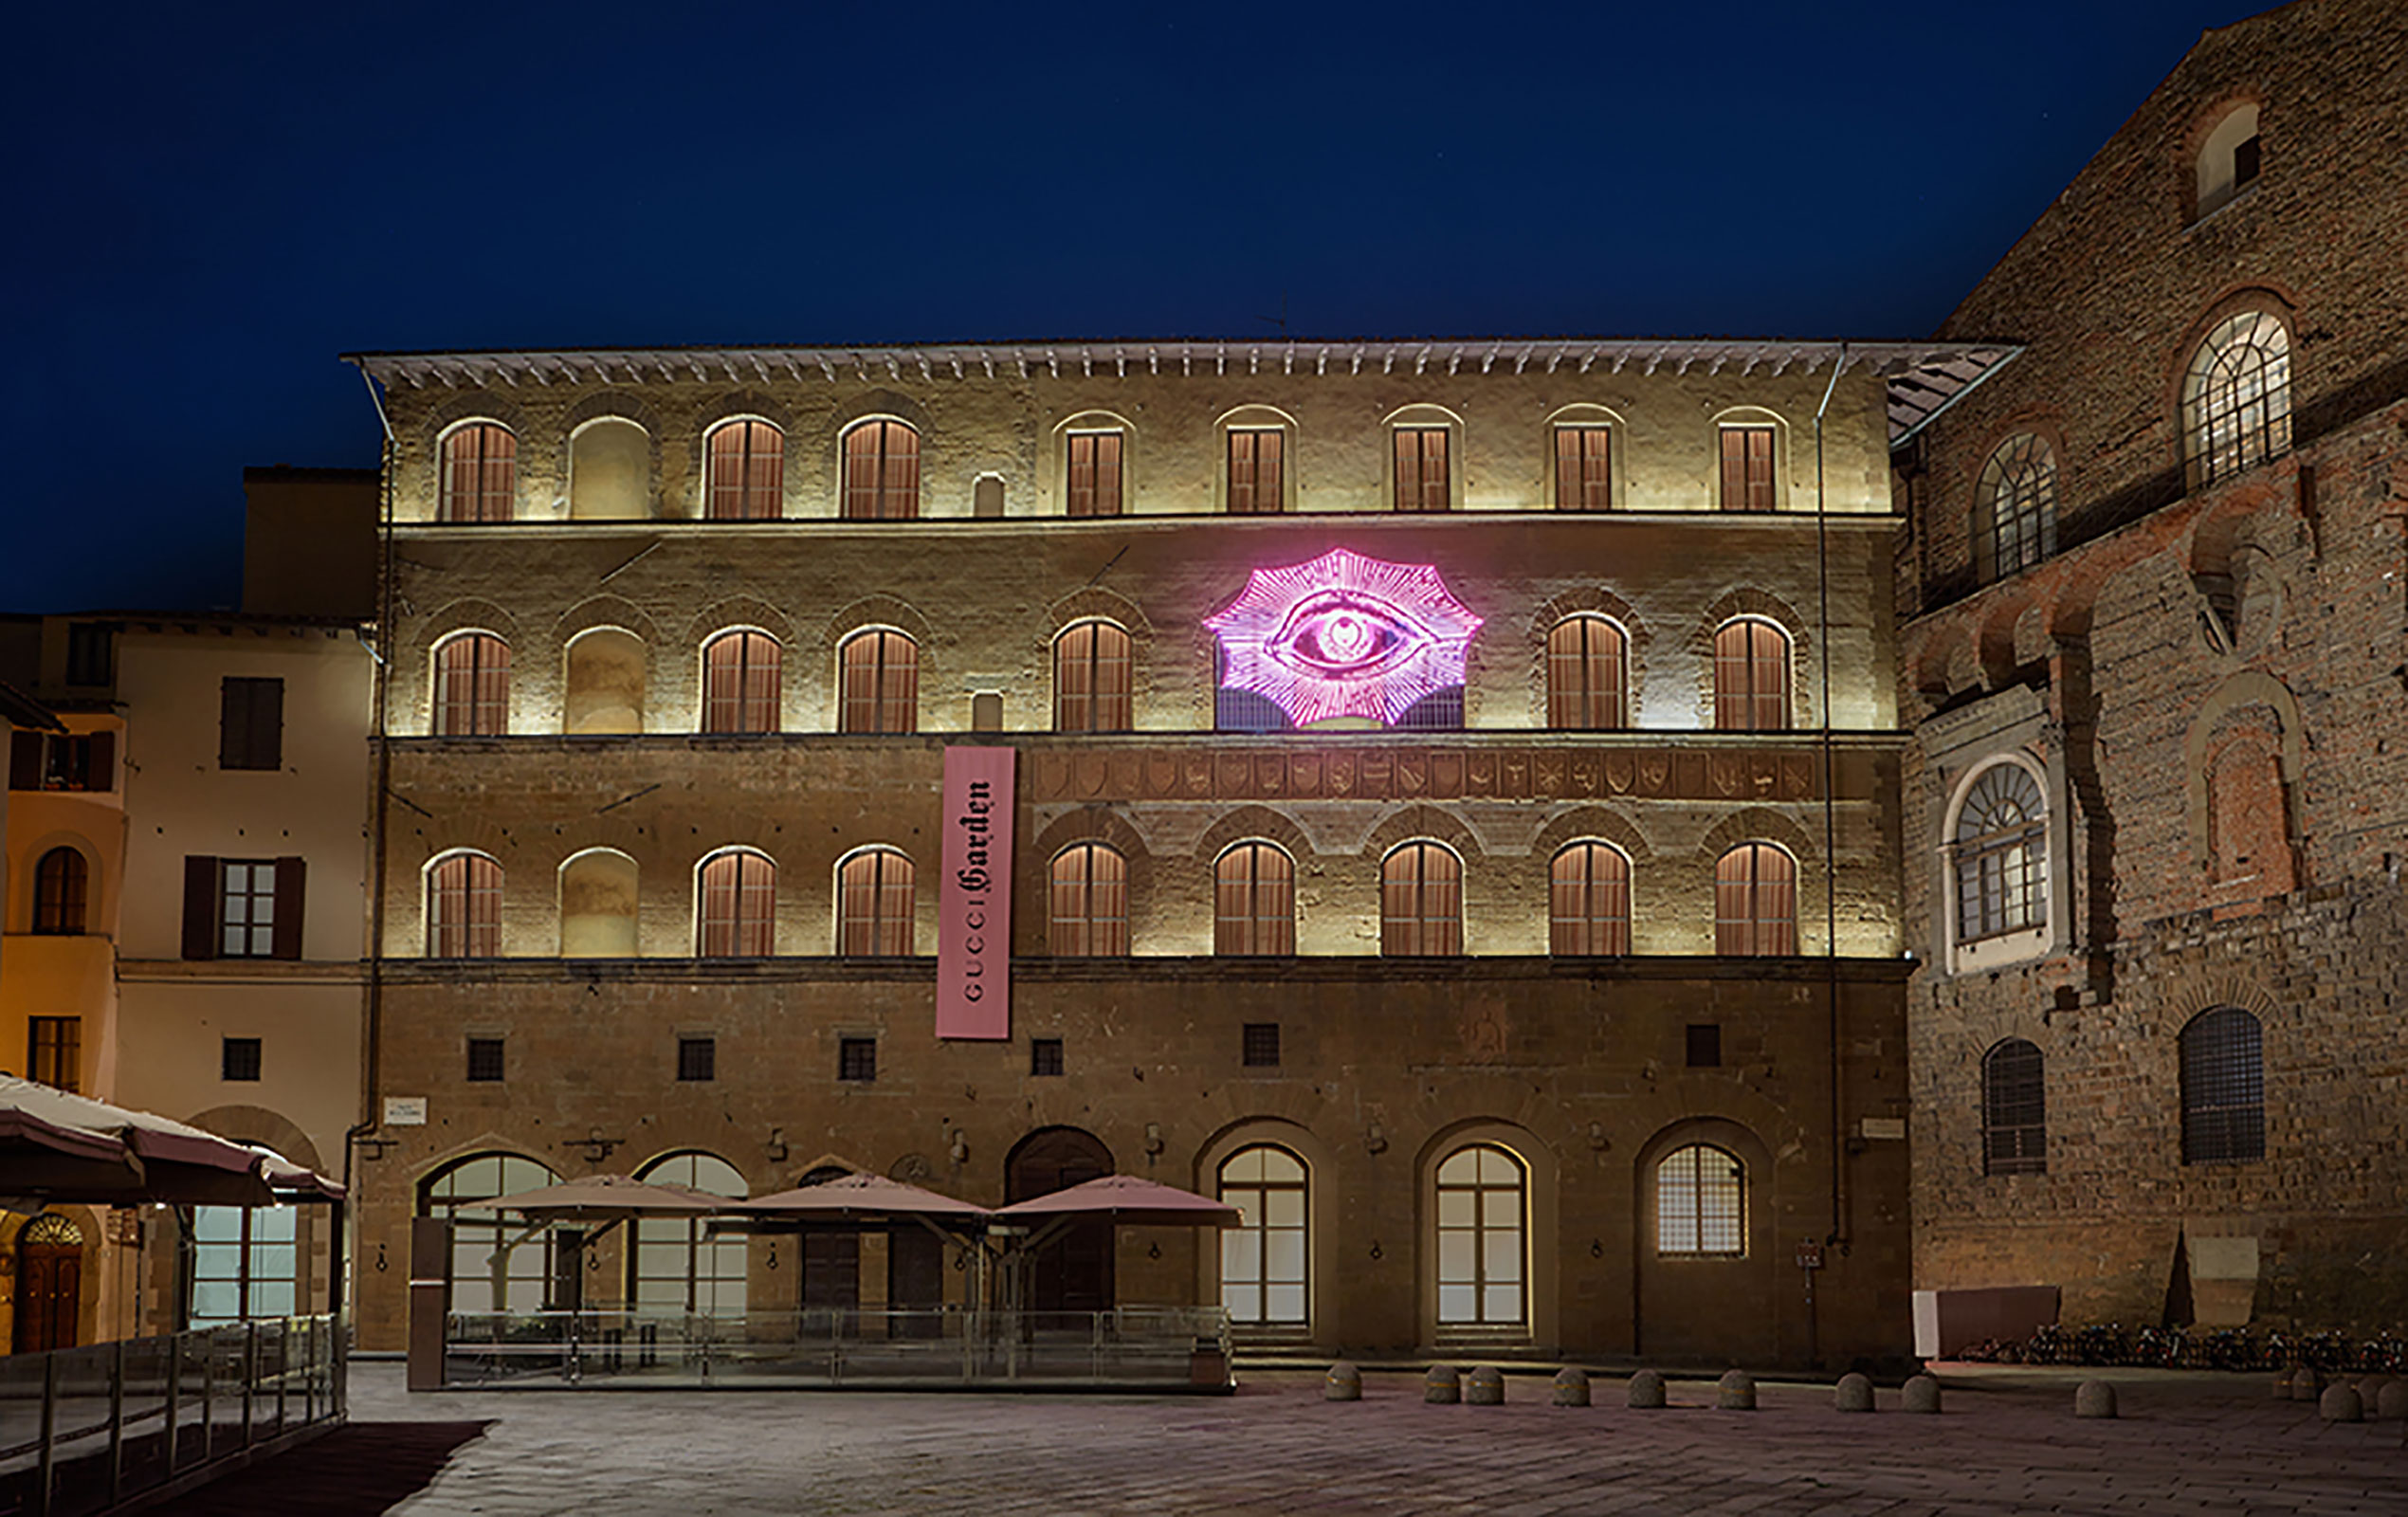 Gucci Opend 'Gucci Garden' In Florence